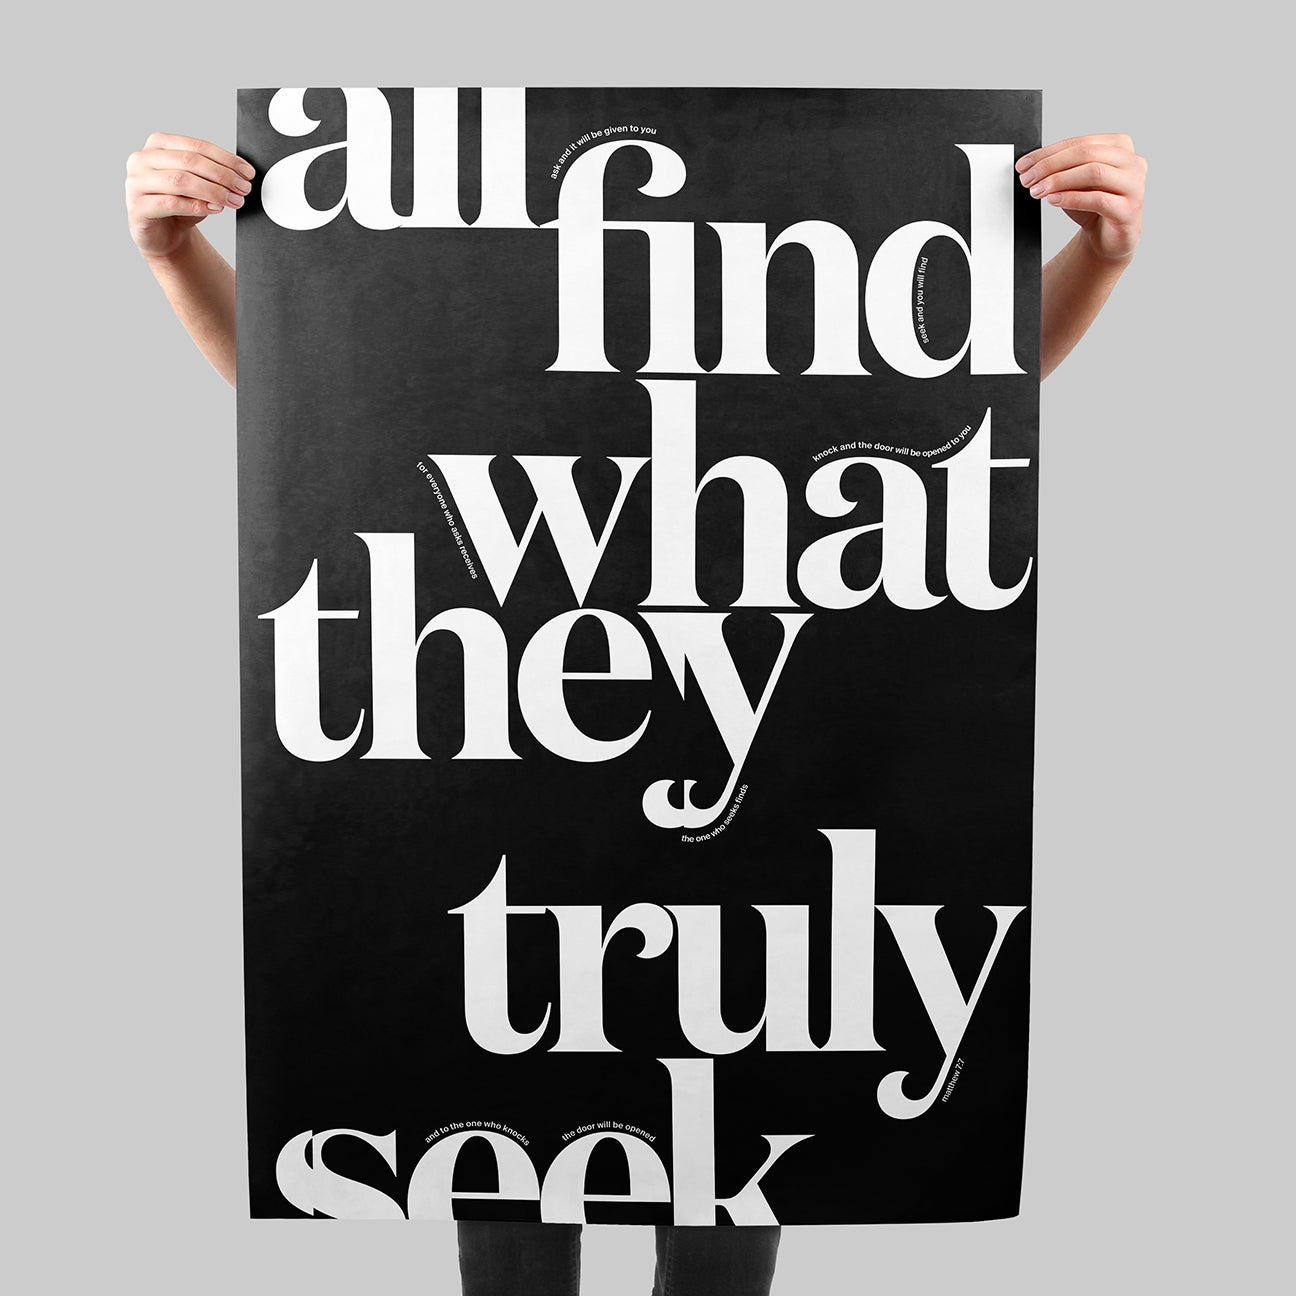 All Find What They Truly Seek SIGNAL A poster by Xtian Miller